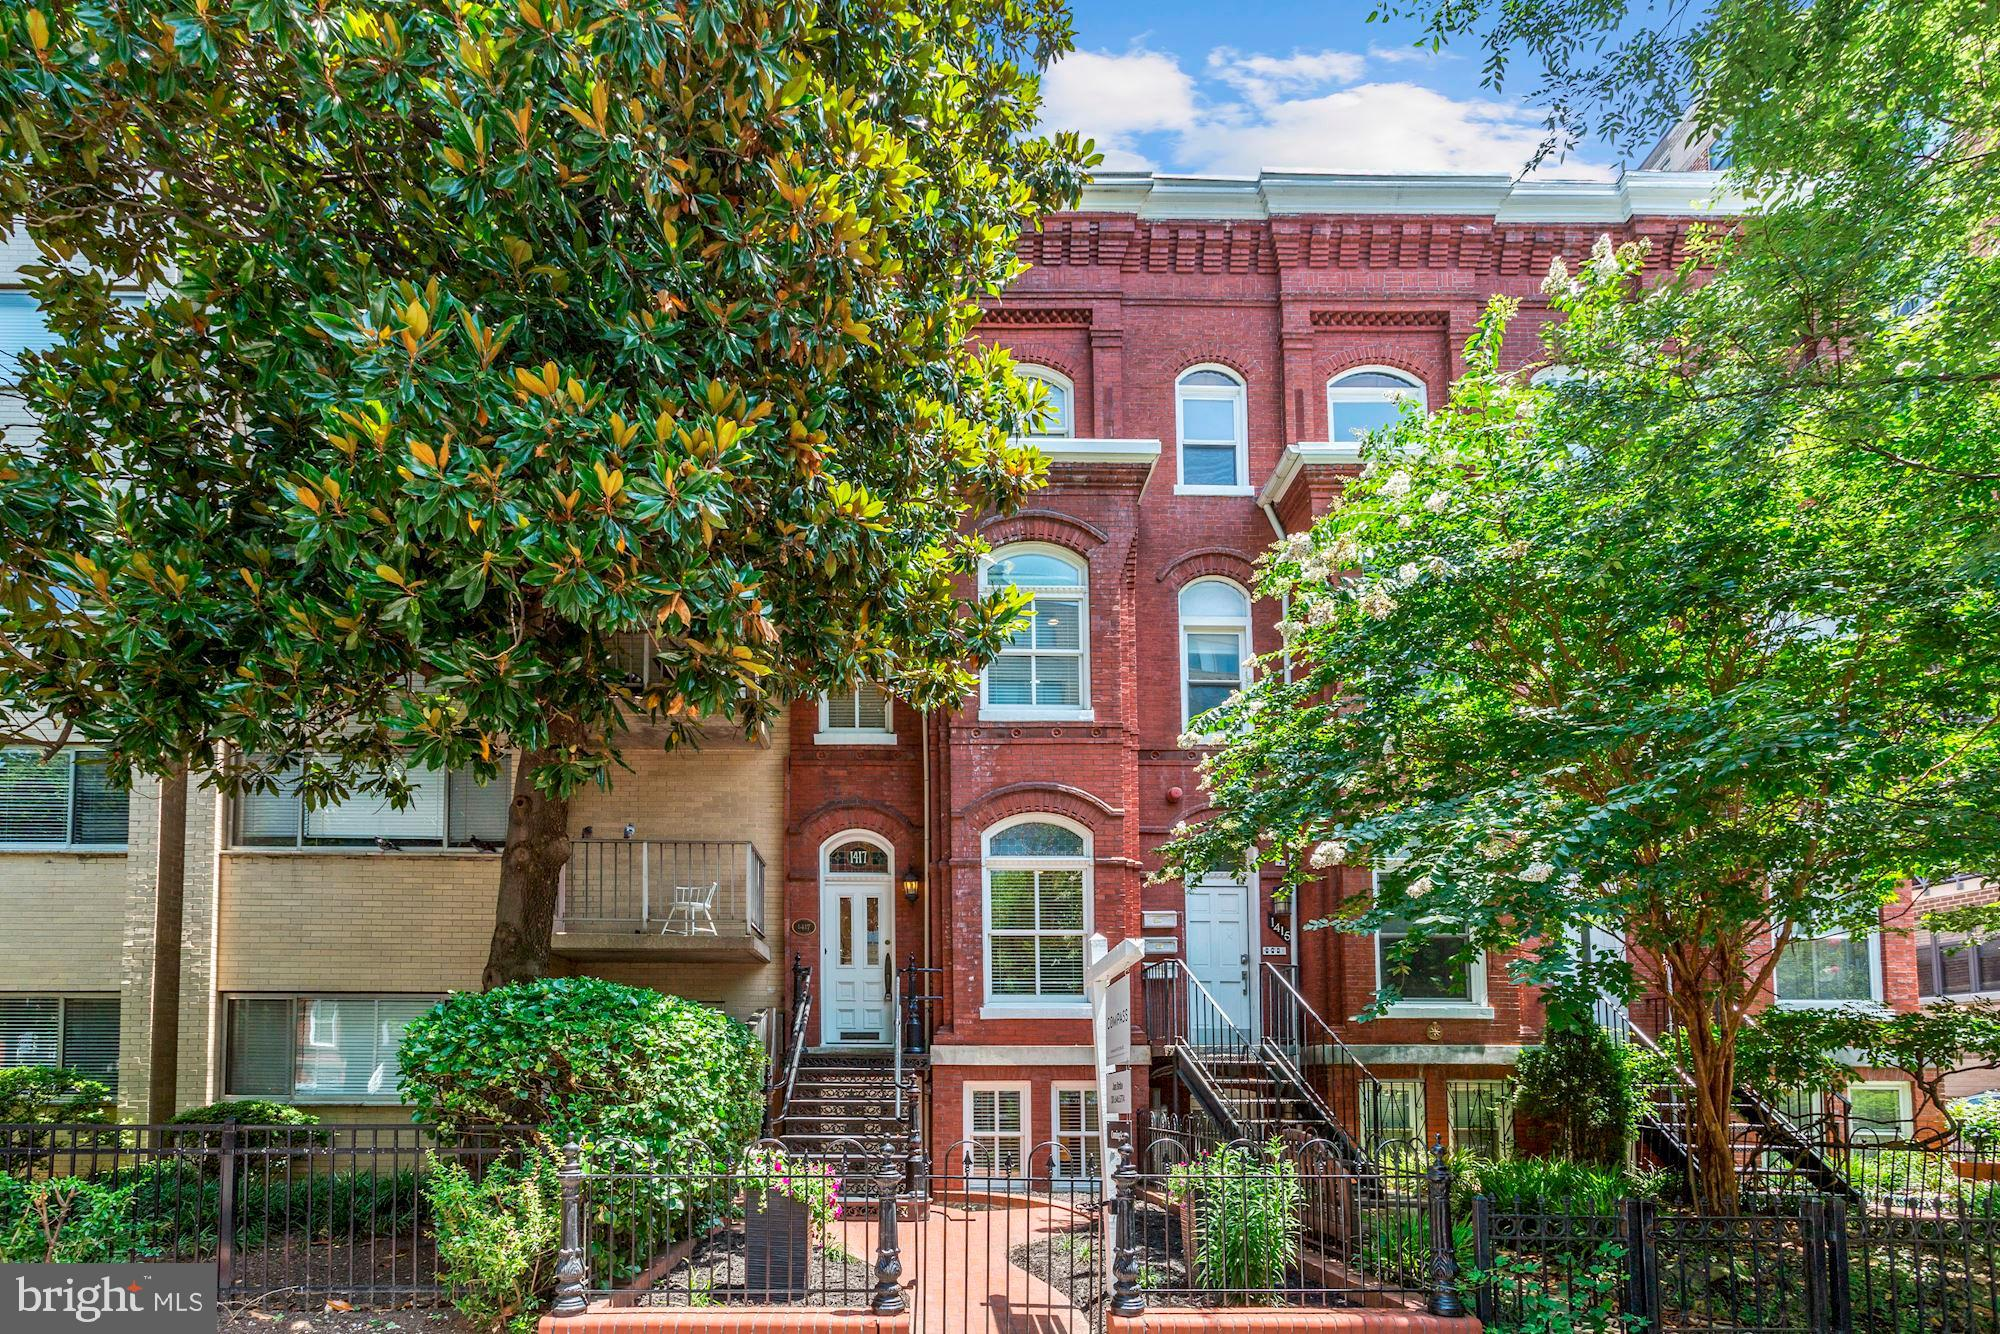 HIGH END RENOVATION in 2011 paired with one of the most sought after Dupont addresses, just 2 blocks